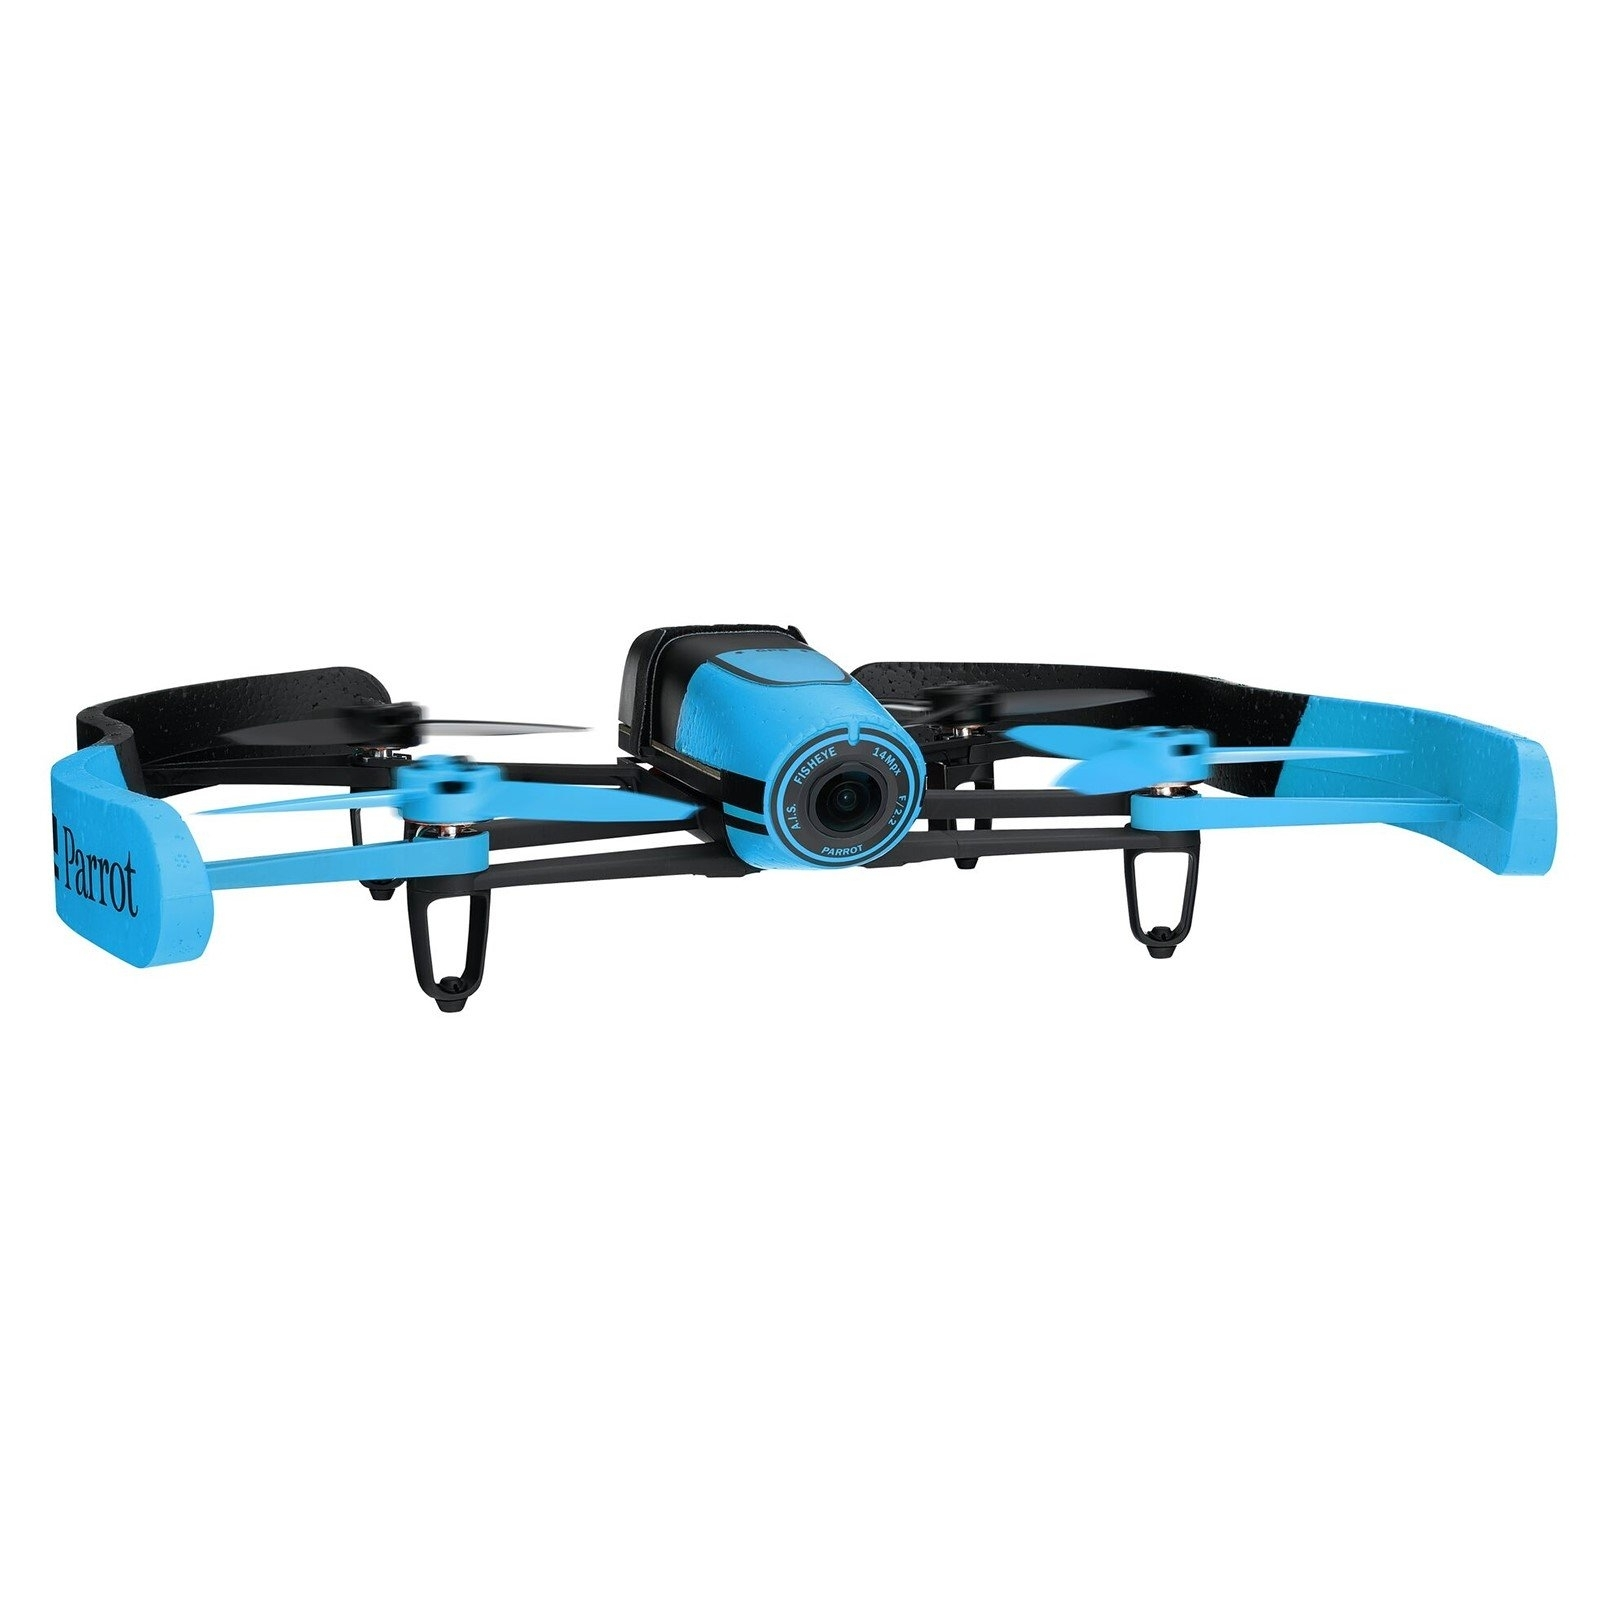 Parrot Bebop Quadcopter Drone with 14MP Full HD 1080p Wide-Angle Camera